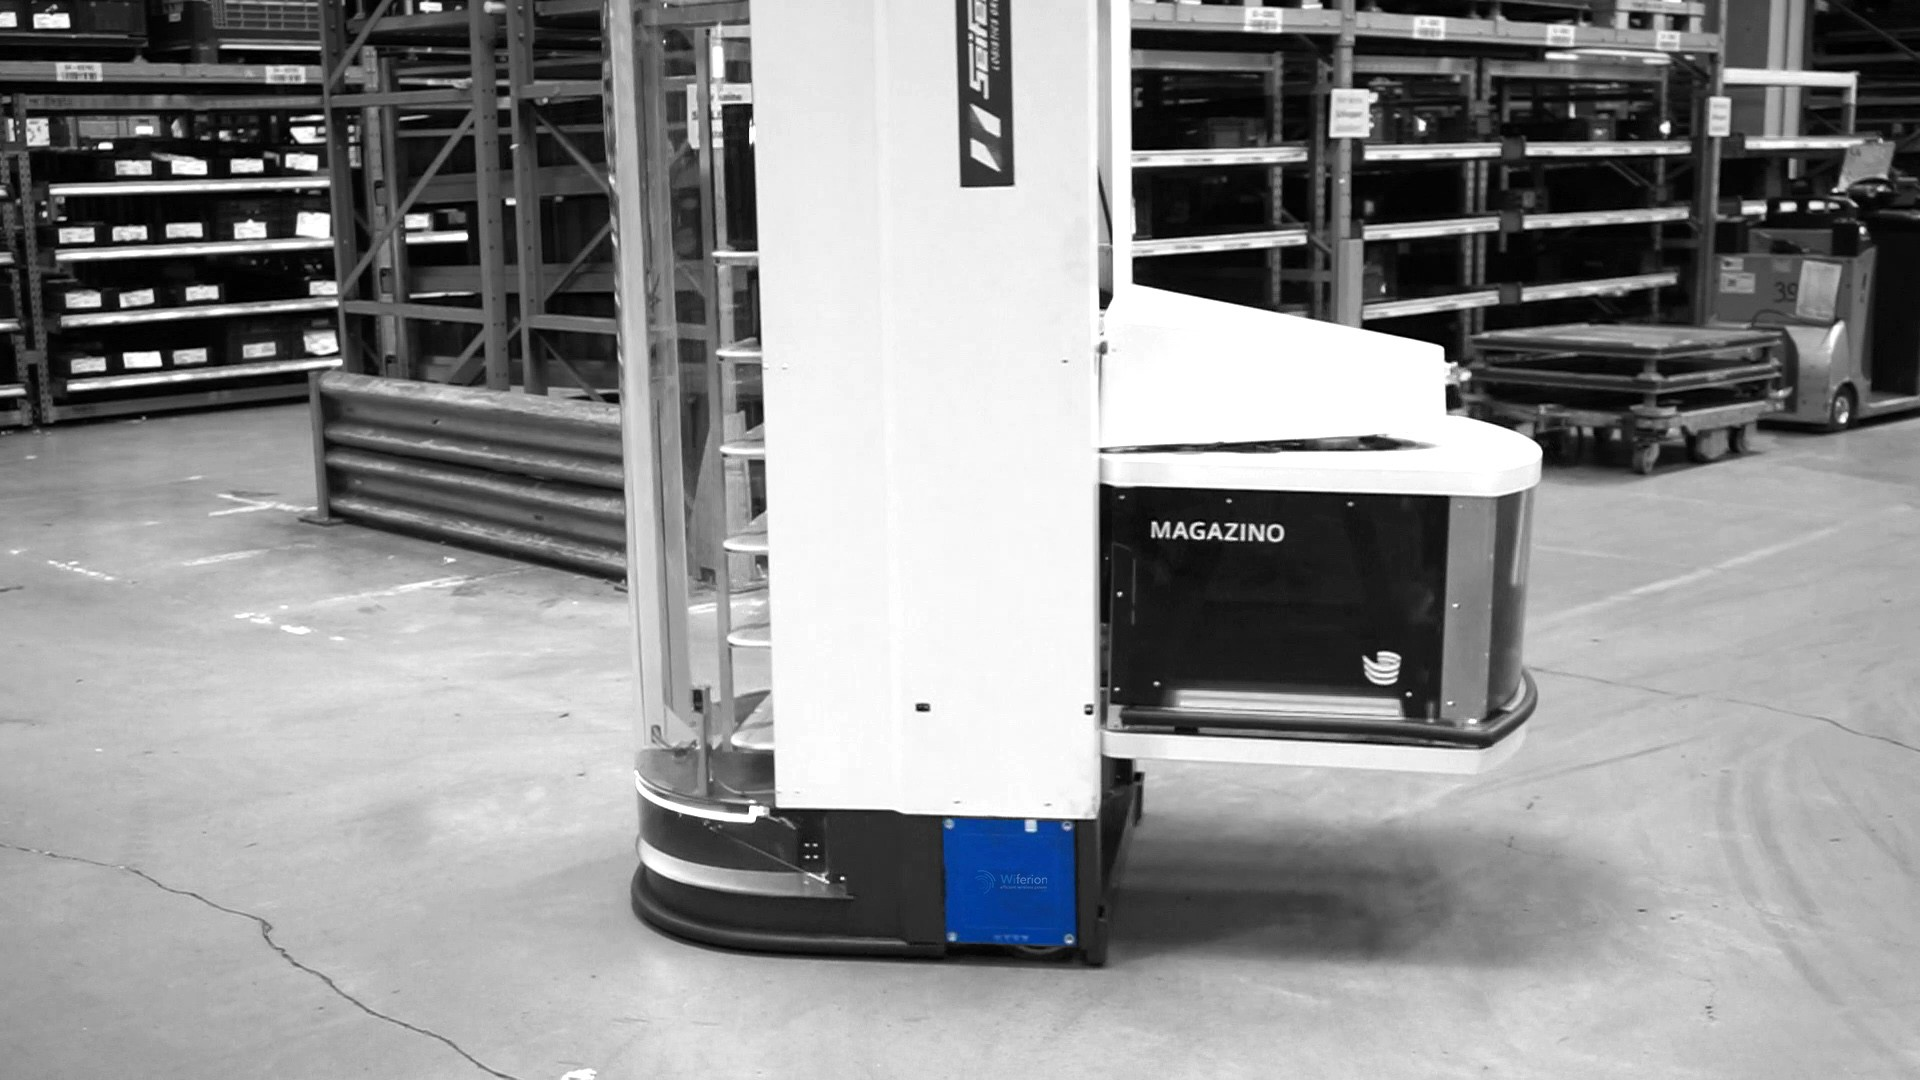 induktives laden ftf magazino - wireless charging agv mobile robot